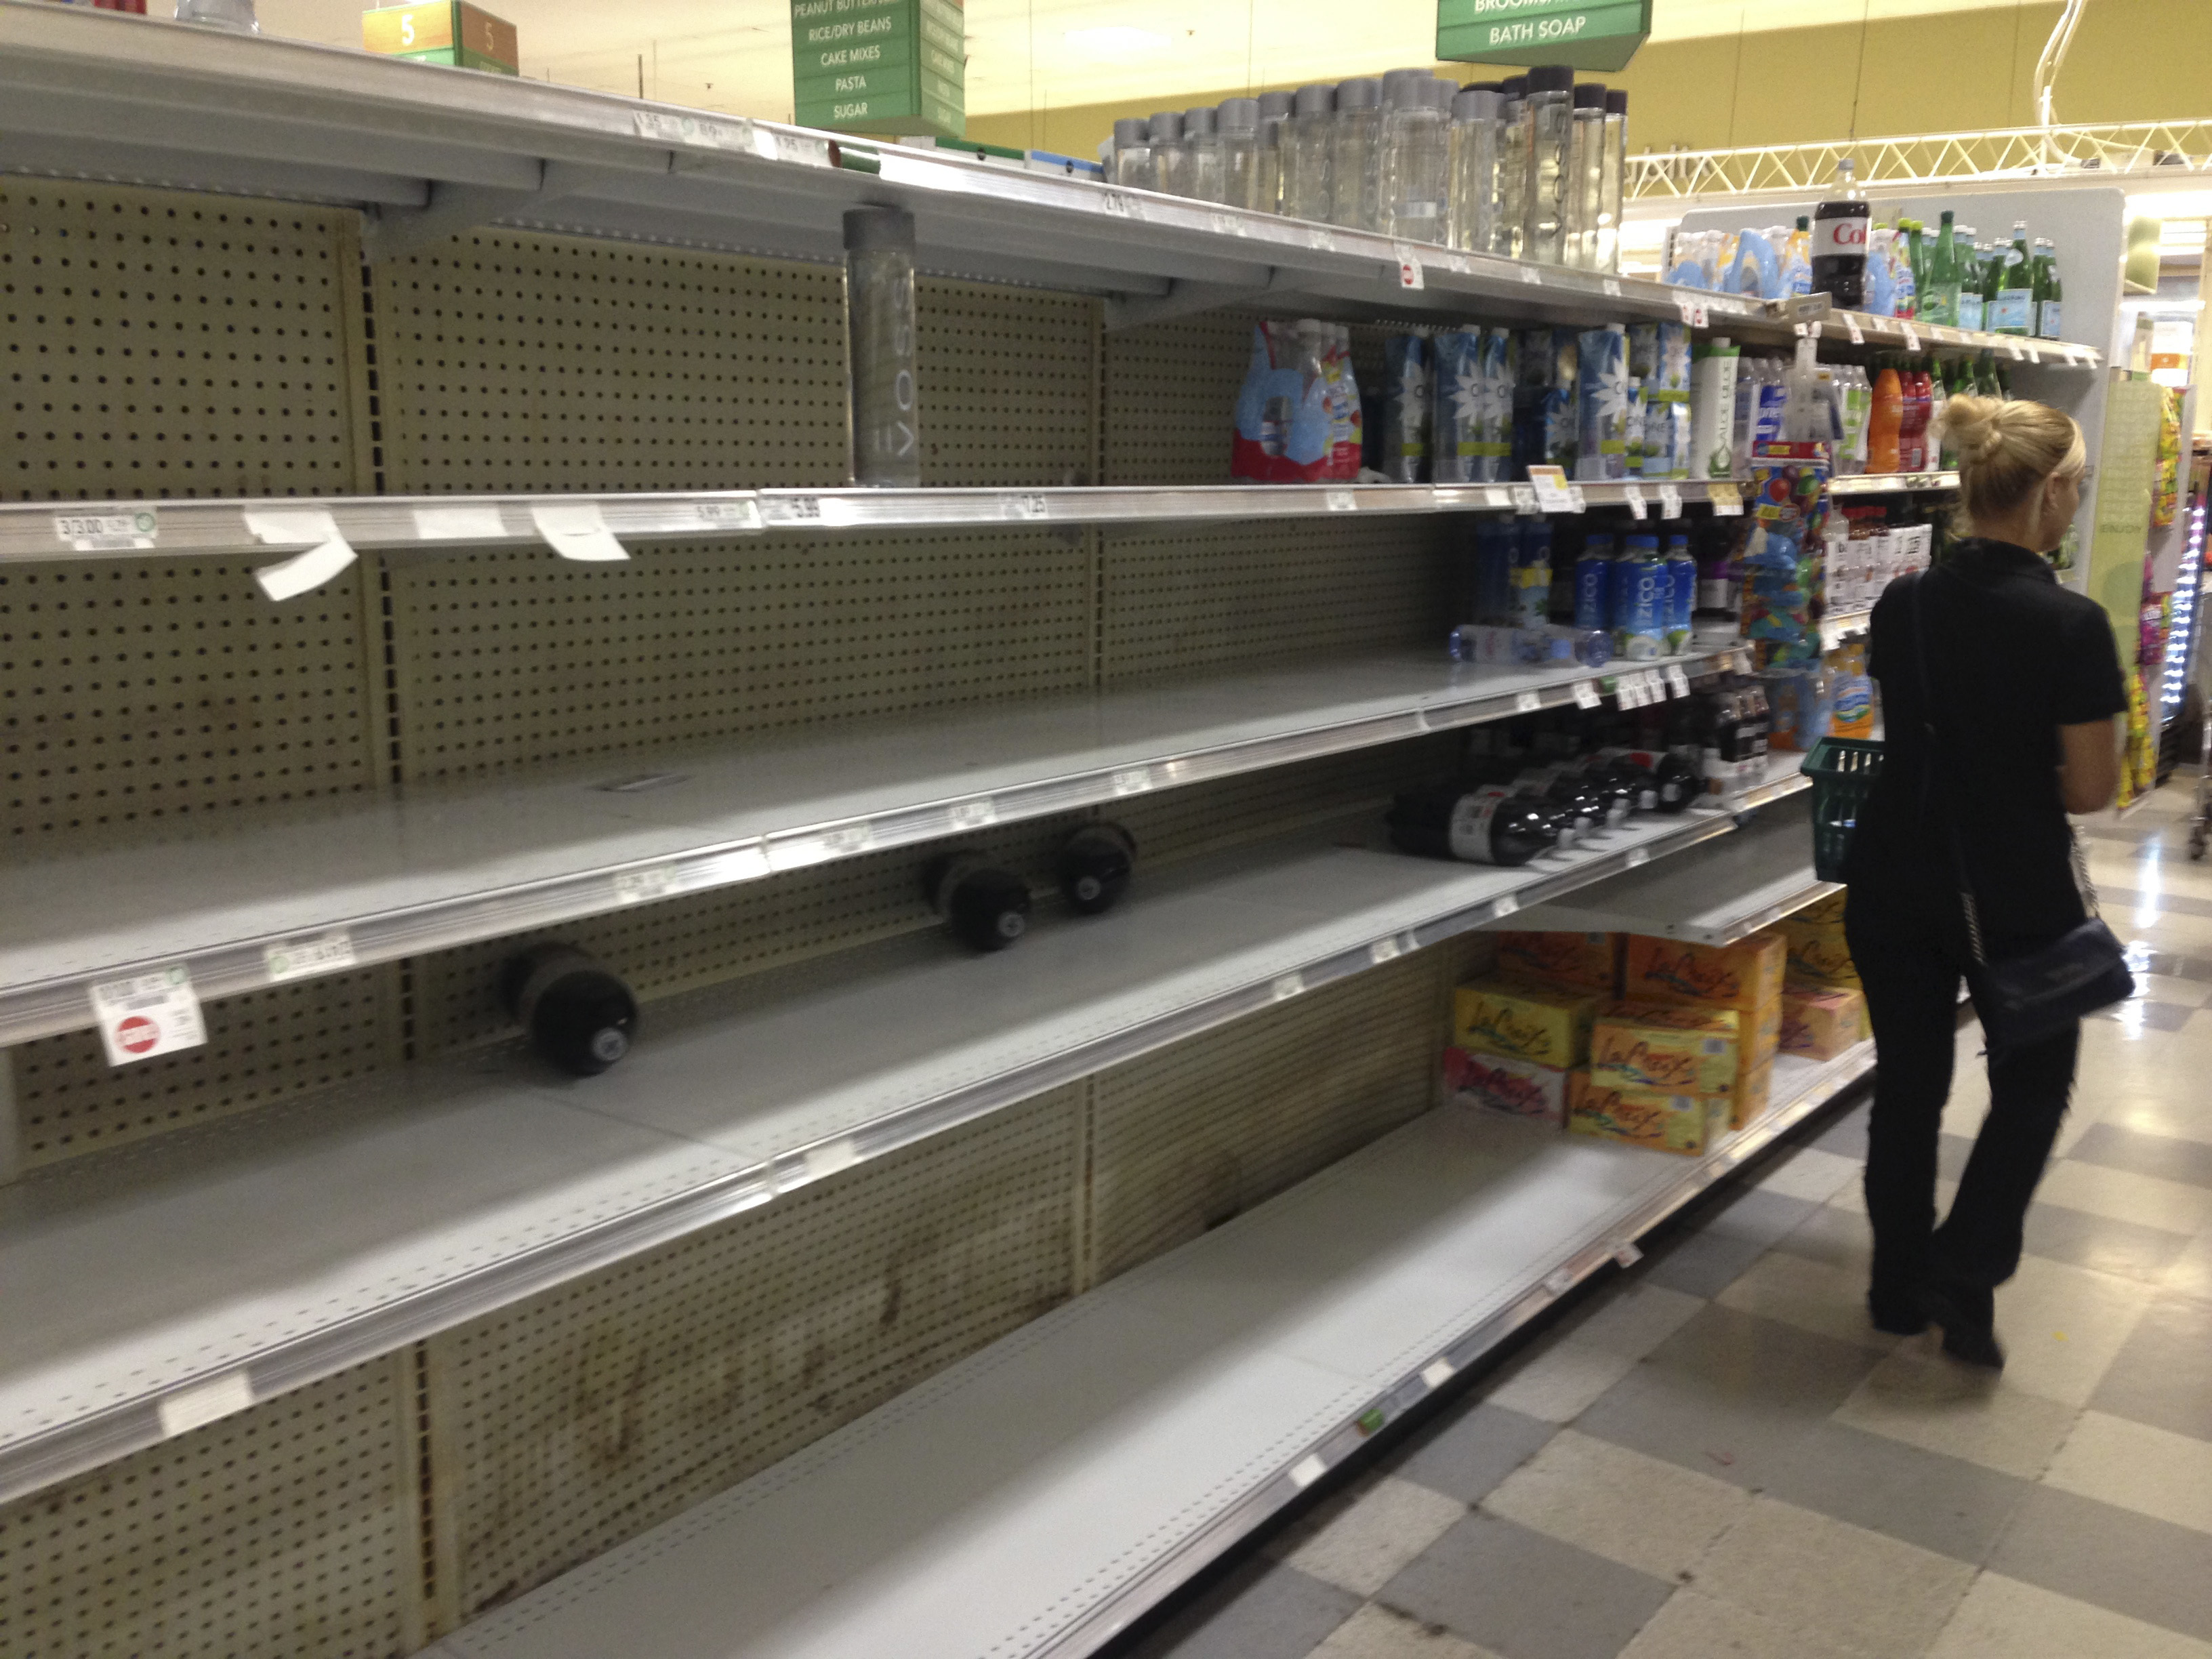 A shopper walks by the empty shelves where bottled water normally would be, at a grocery store in Hollywood, Fla., Oct. 5, 2016.